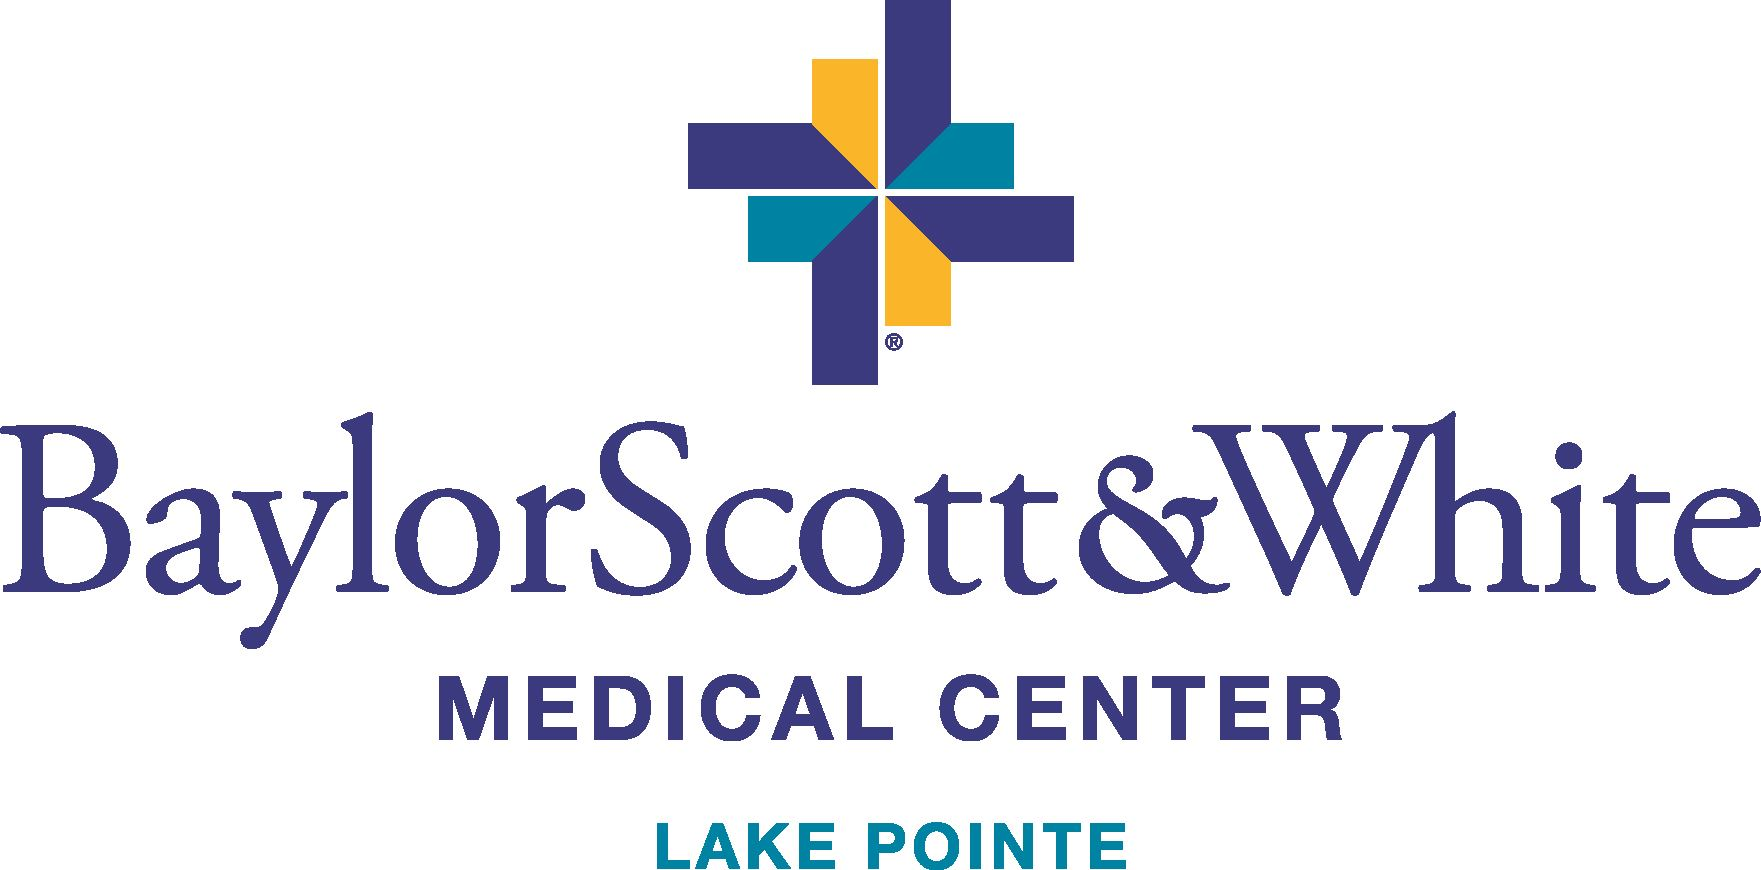 BSW Medical Center Lake Pointe_C_N4c